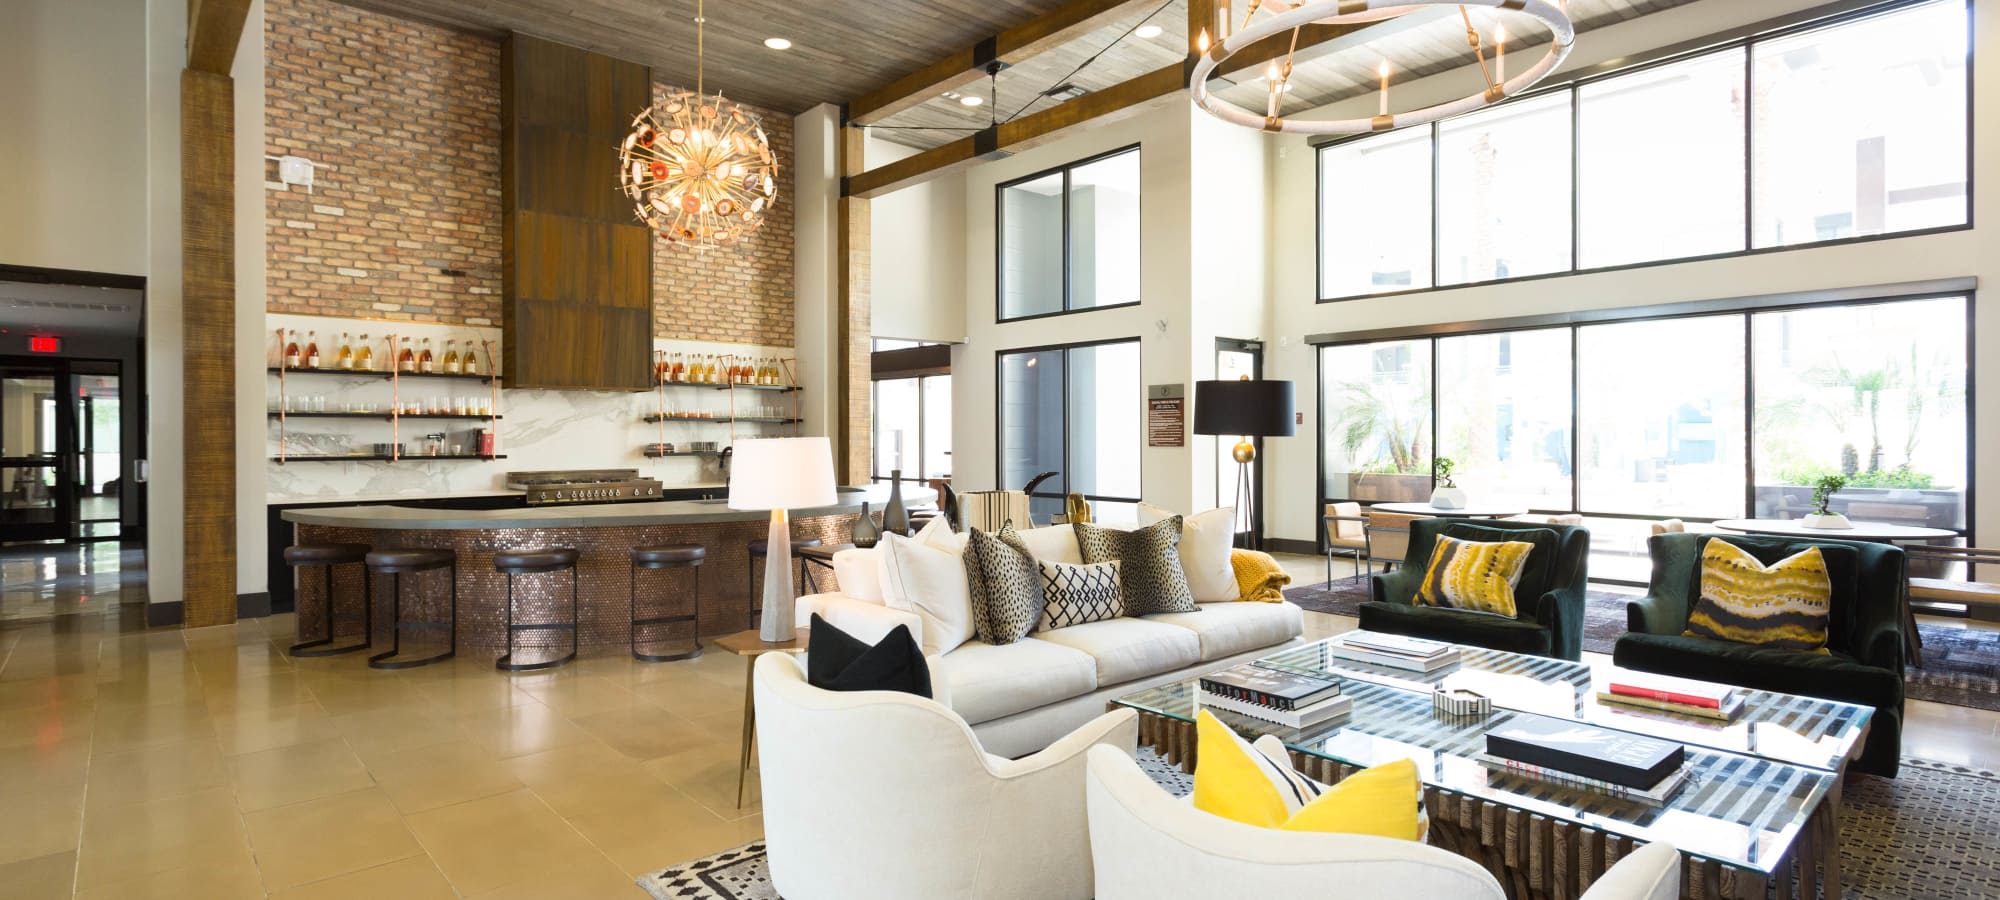 Beautiful and comfortable decor in the lobby at Avant at Fashion Center in Chandler, Arizona